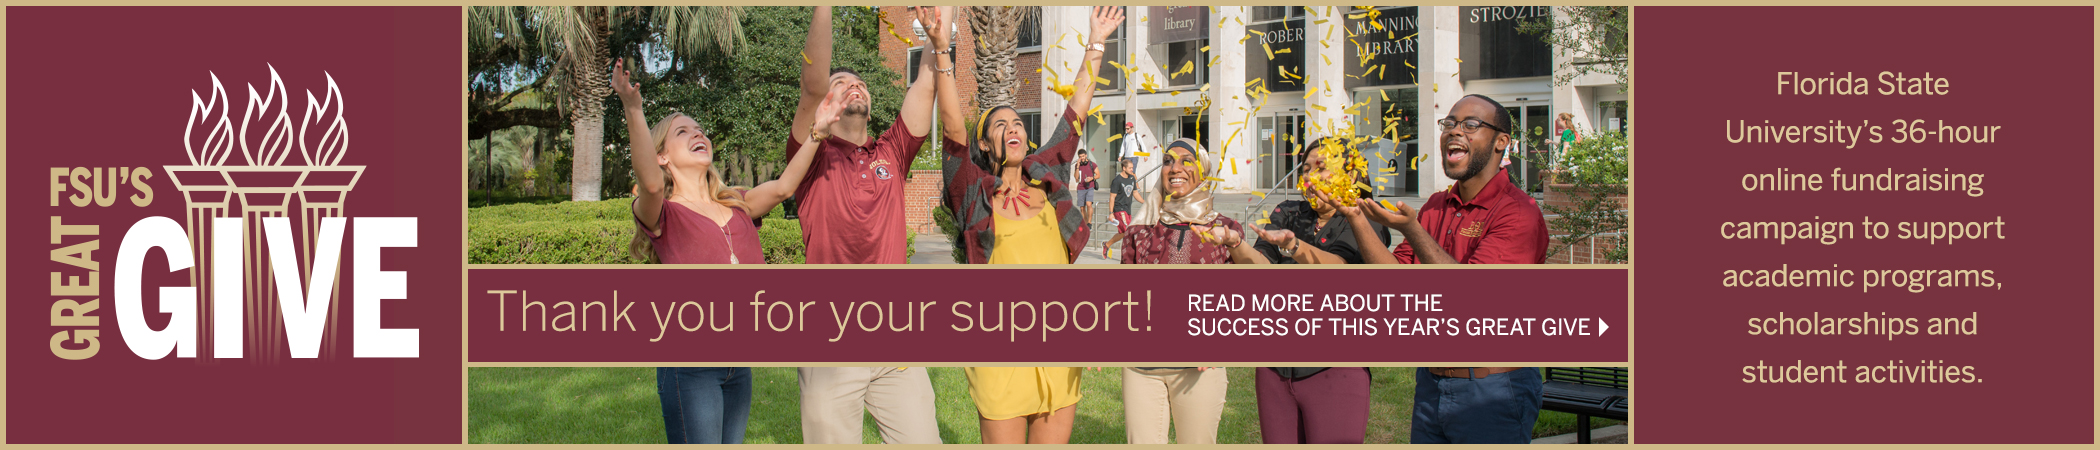 FSU's Great Give: Give Online Now!